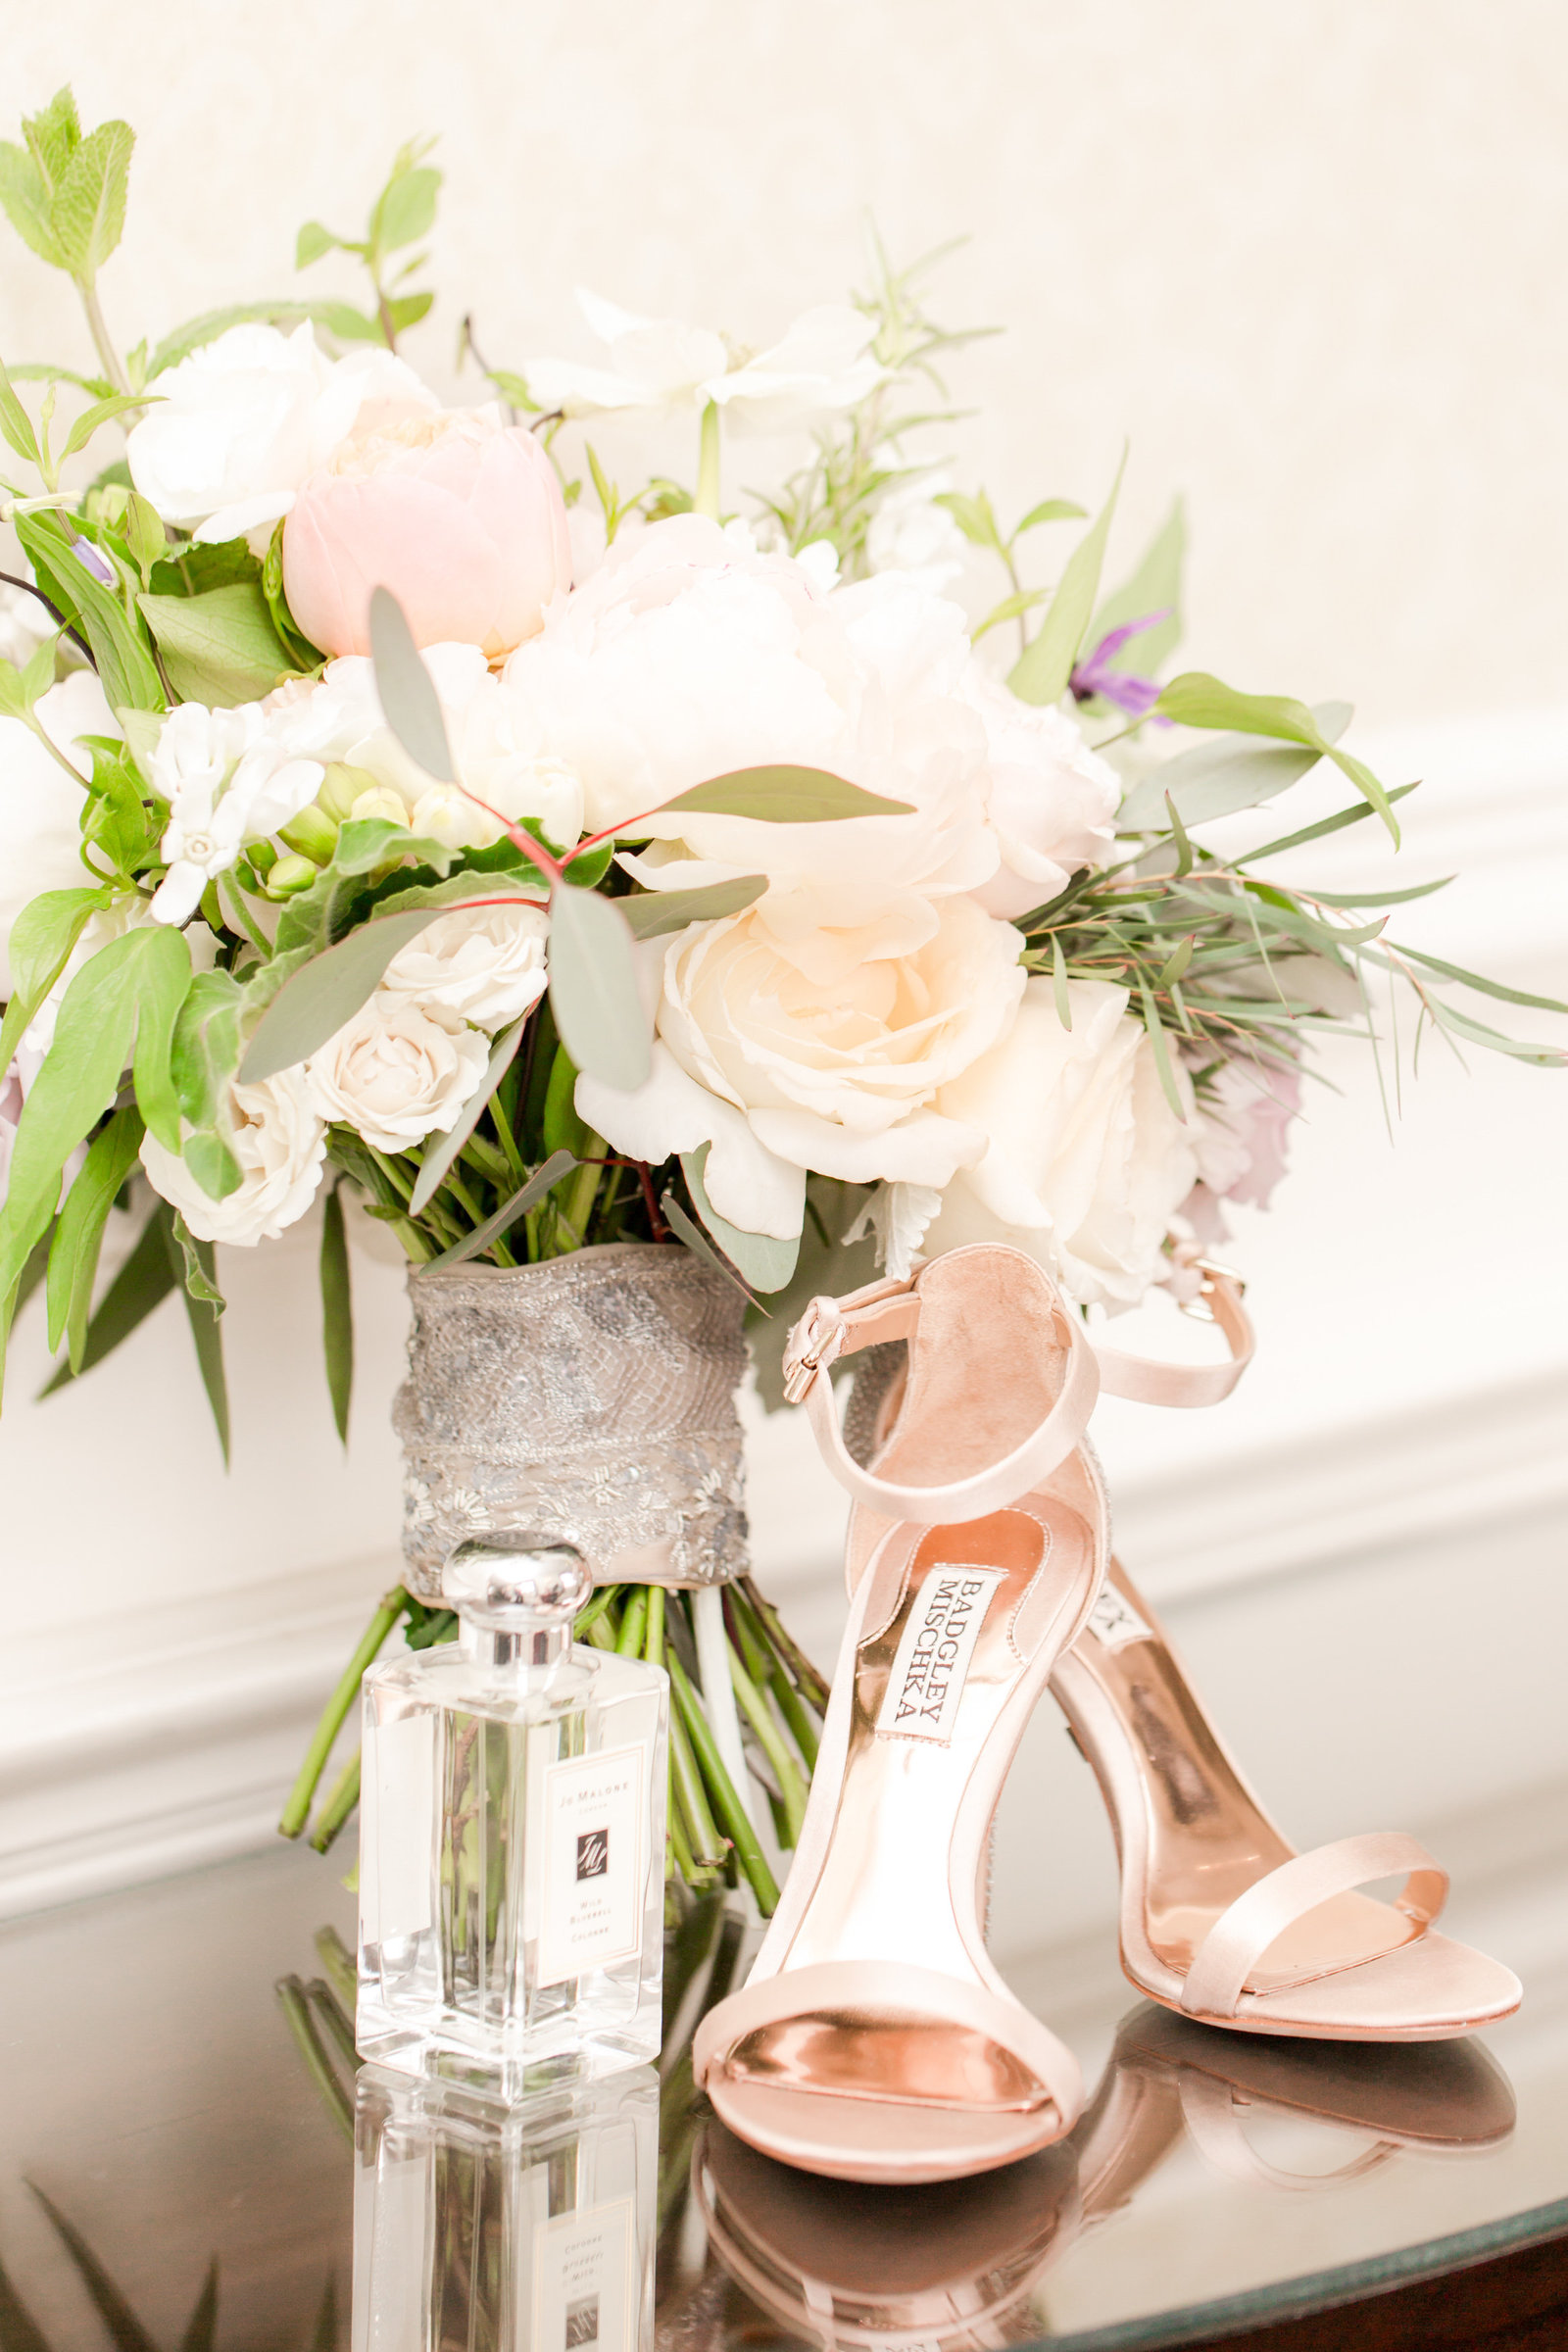 Wedding shoes, perfume, and bouquet